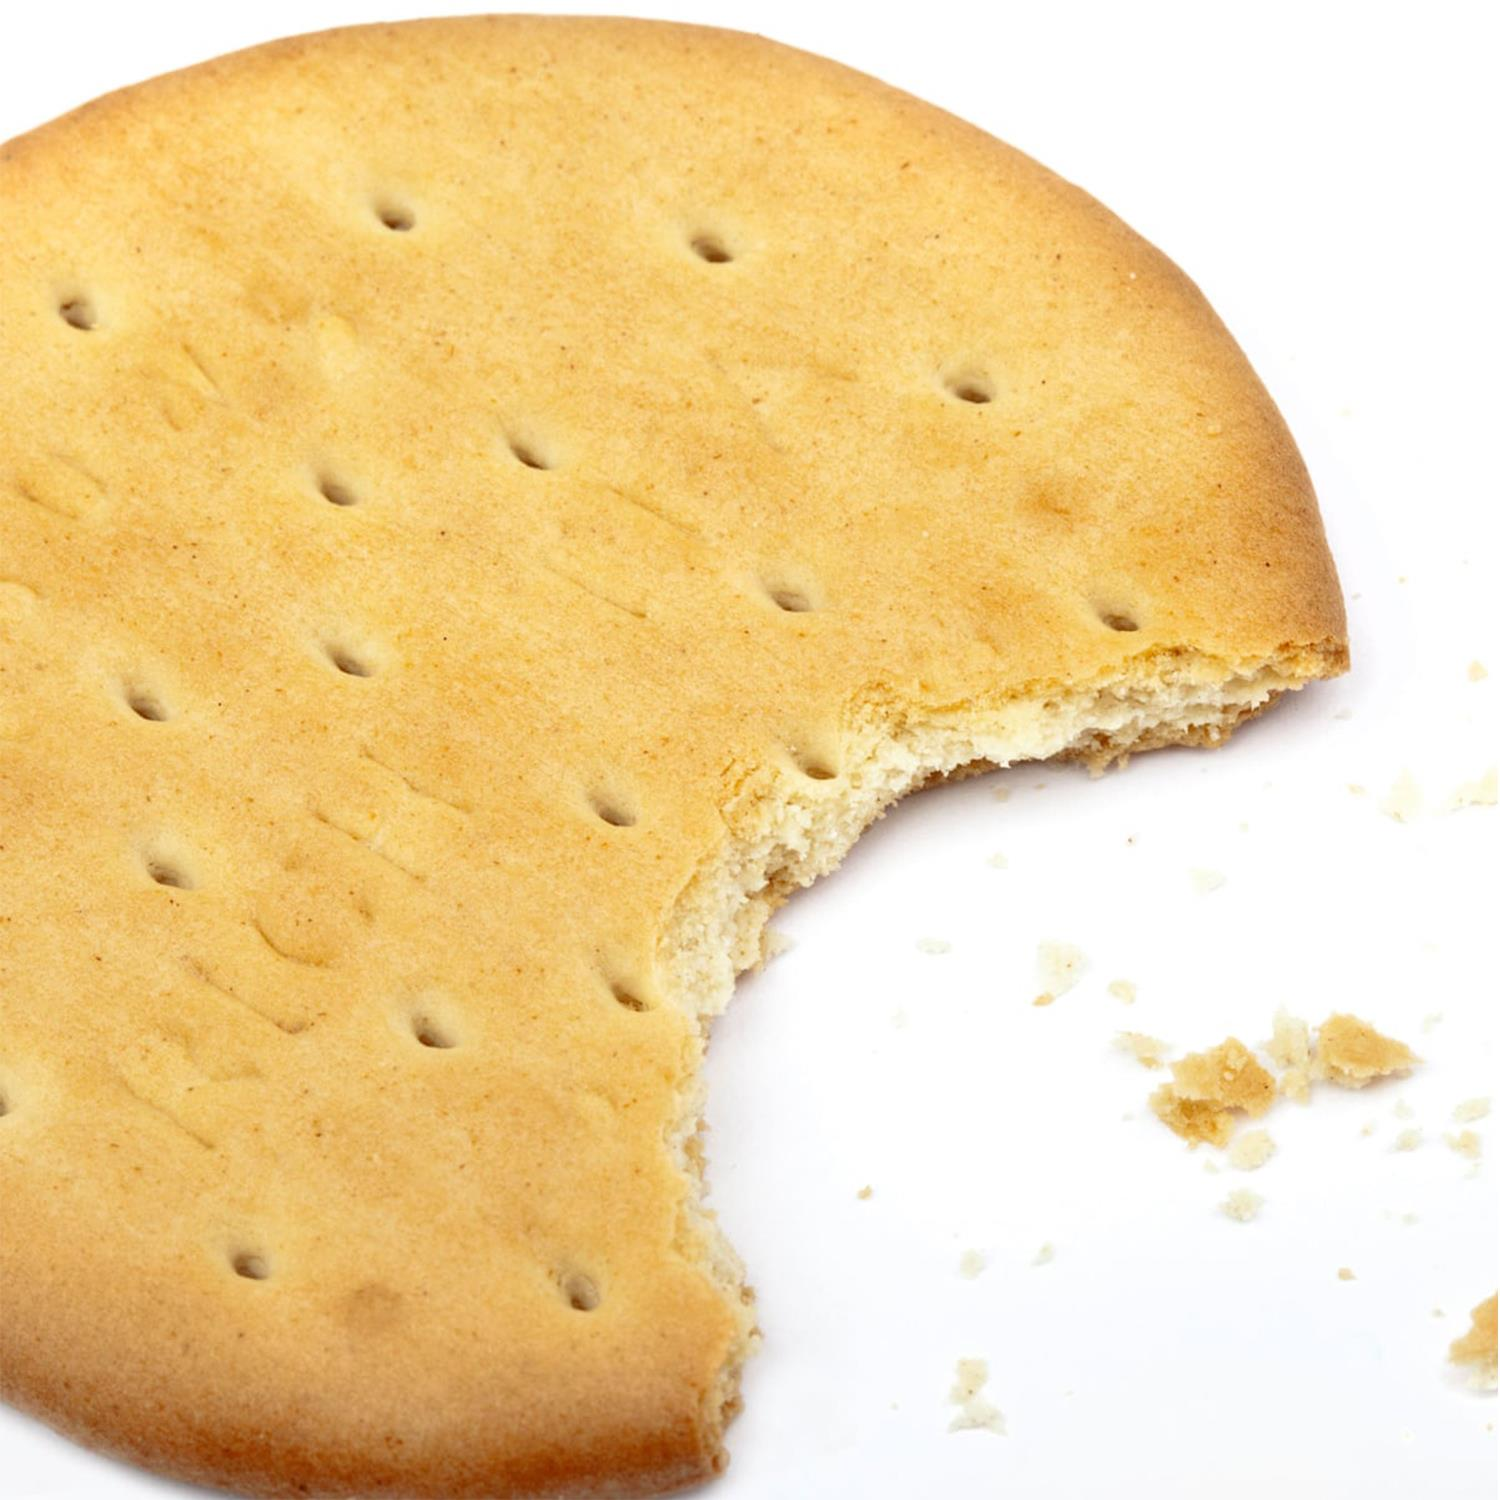 thumbnail 7 - Lyons Rich Tea Biscuits 300g, Great for a morning or afternoon snack